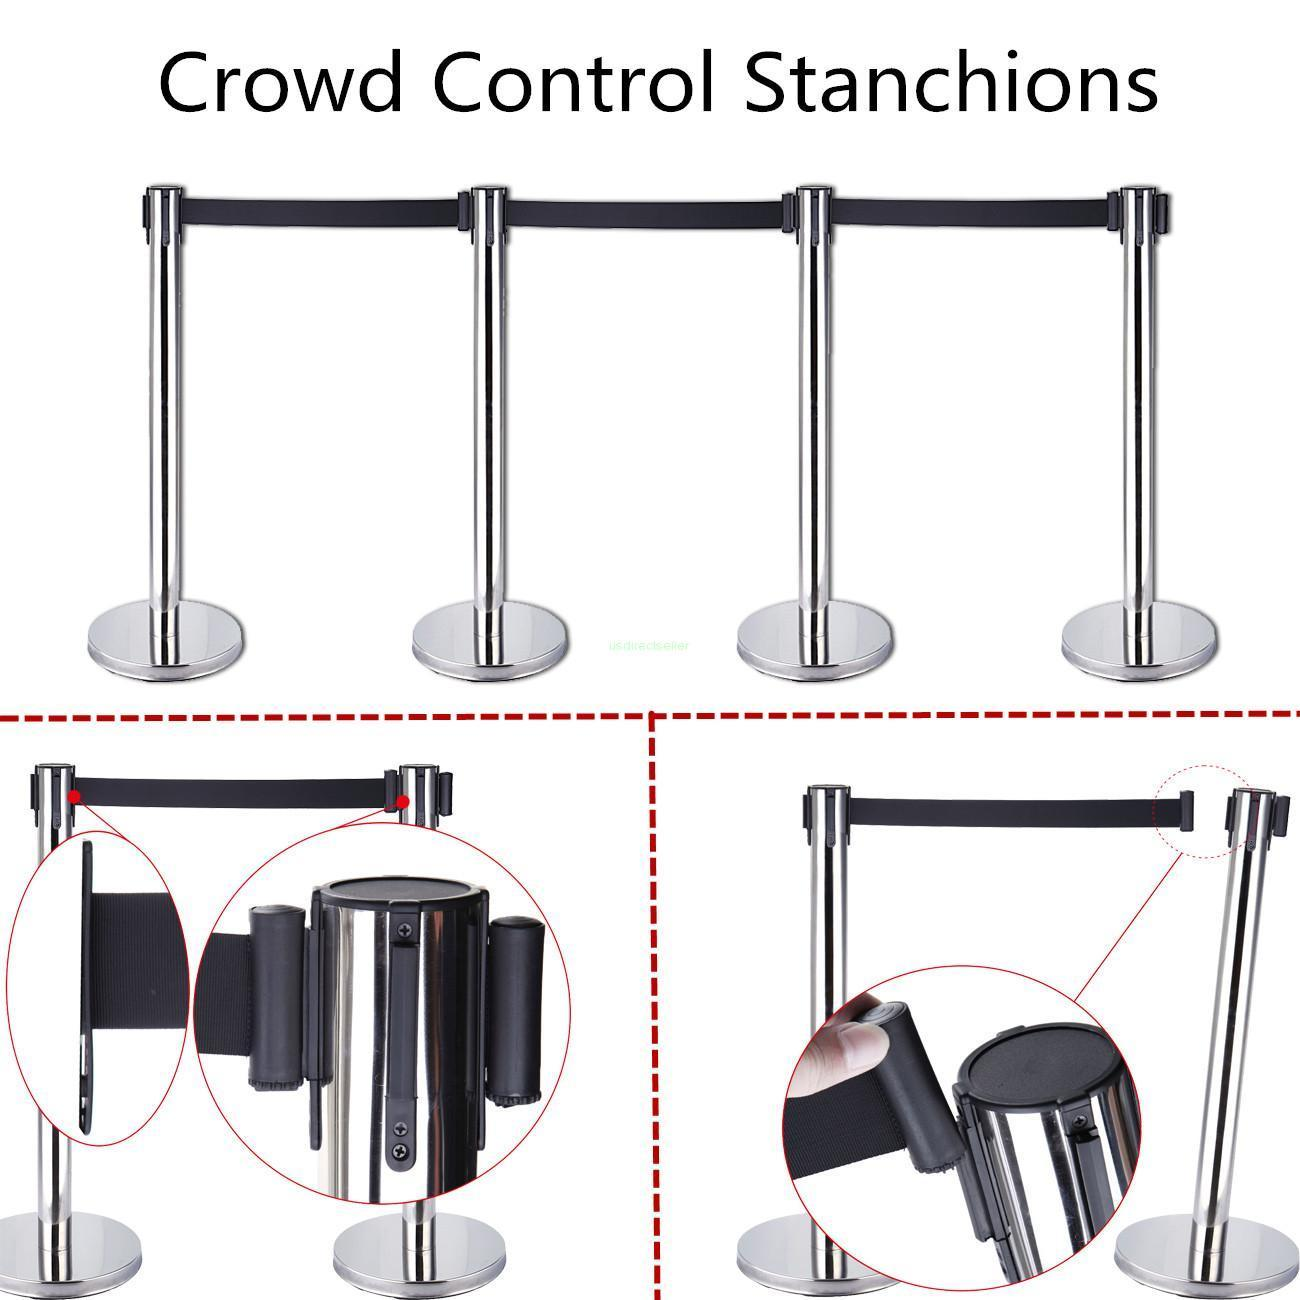 4x Retractable Stanchions /Stretch Style Crowd Control Barriers Black Belts New low price for 2 pcs hotel 3m retractable belt vip crowdcontrol retractable tensa barriers queue way post